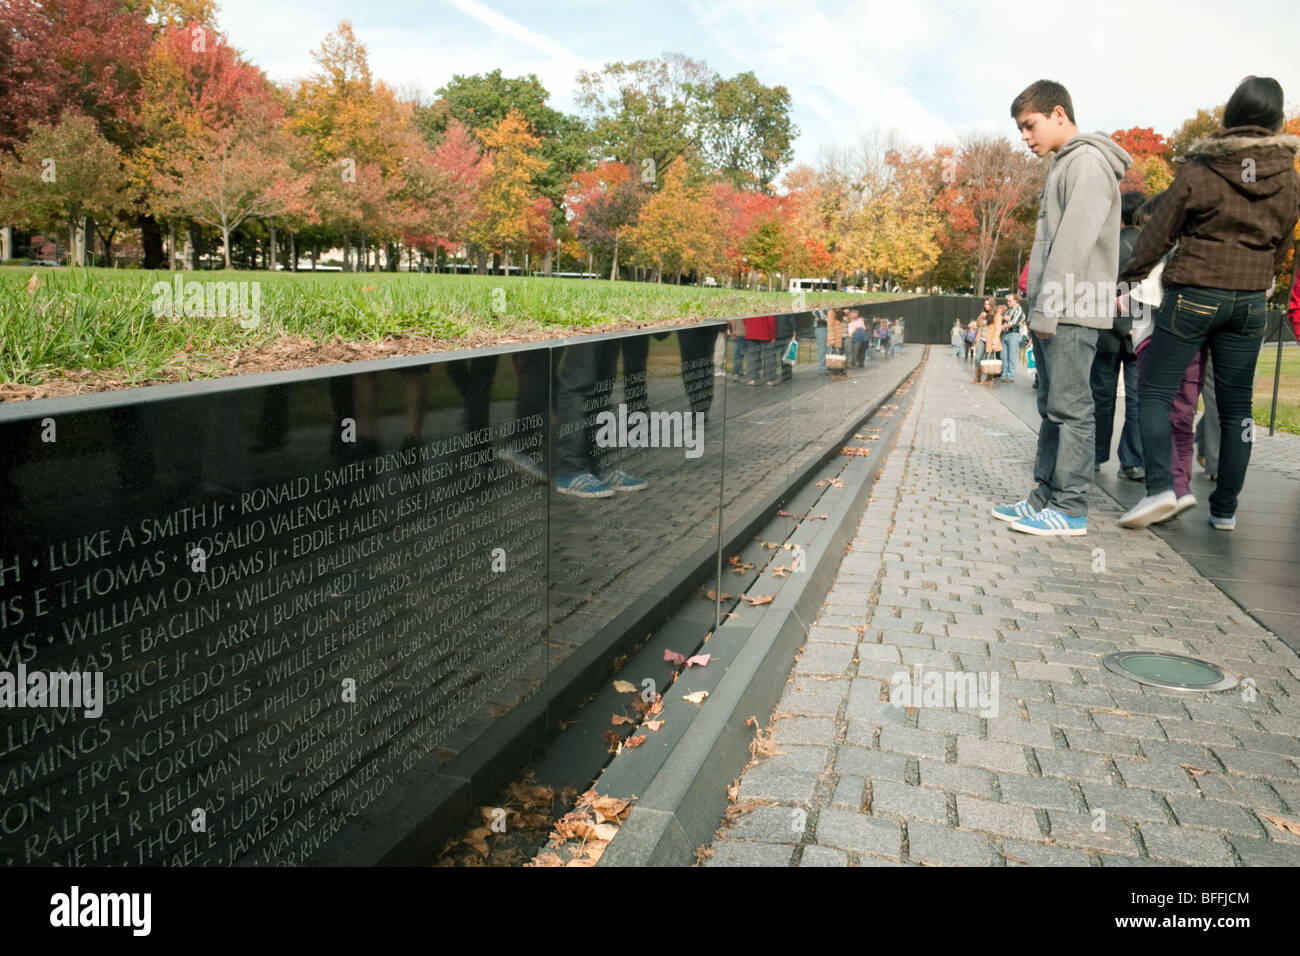 Children Reading The Names On The Memorial Wall At The Vietnam Stock Photo Alamy